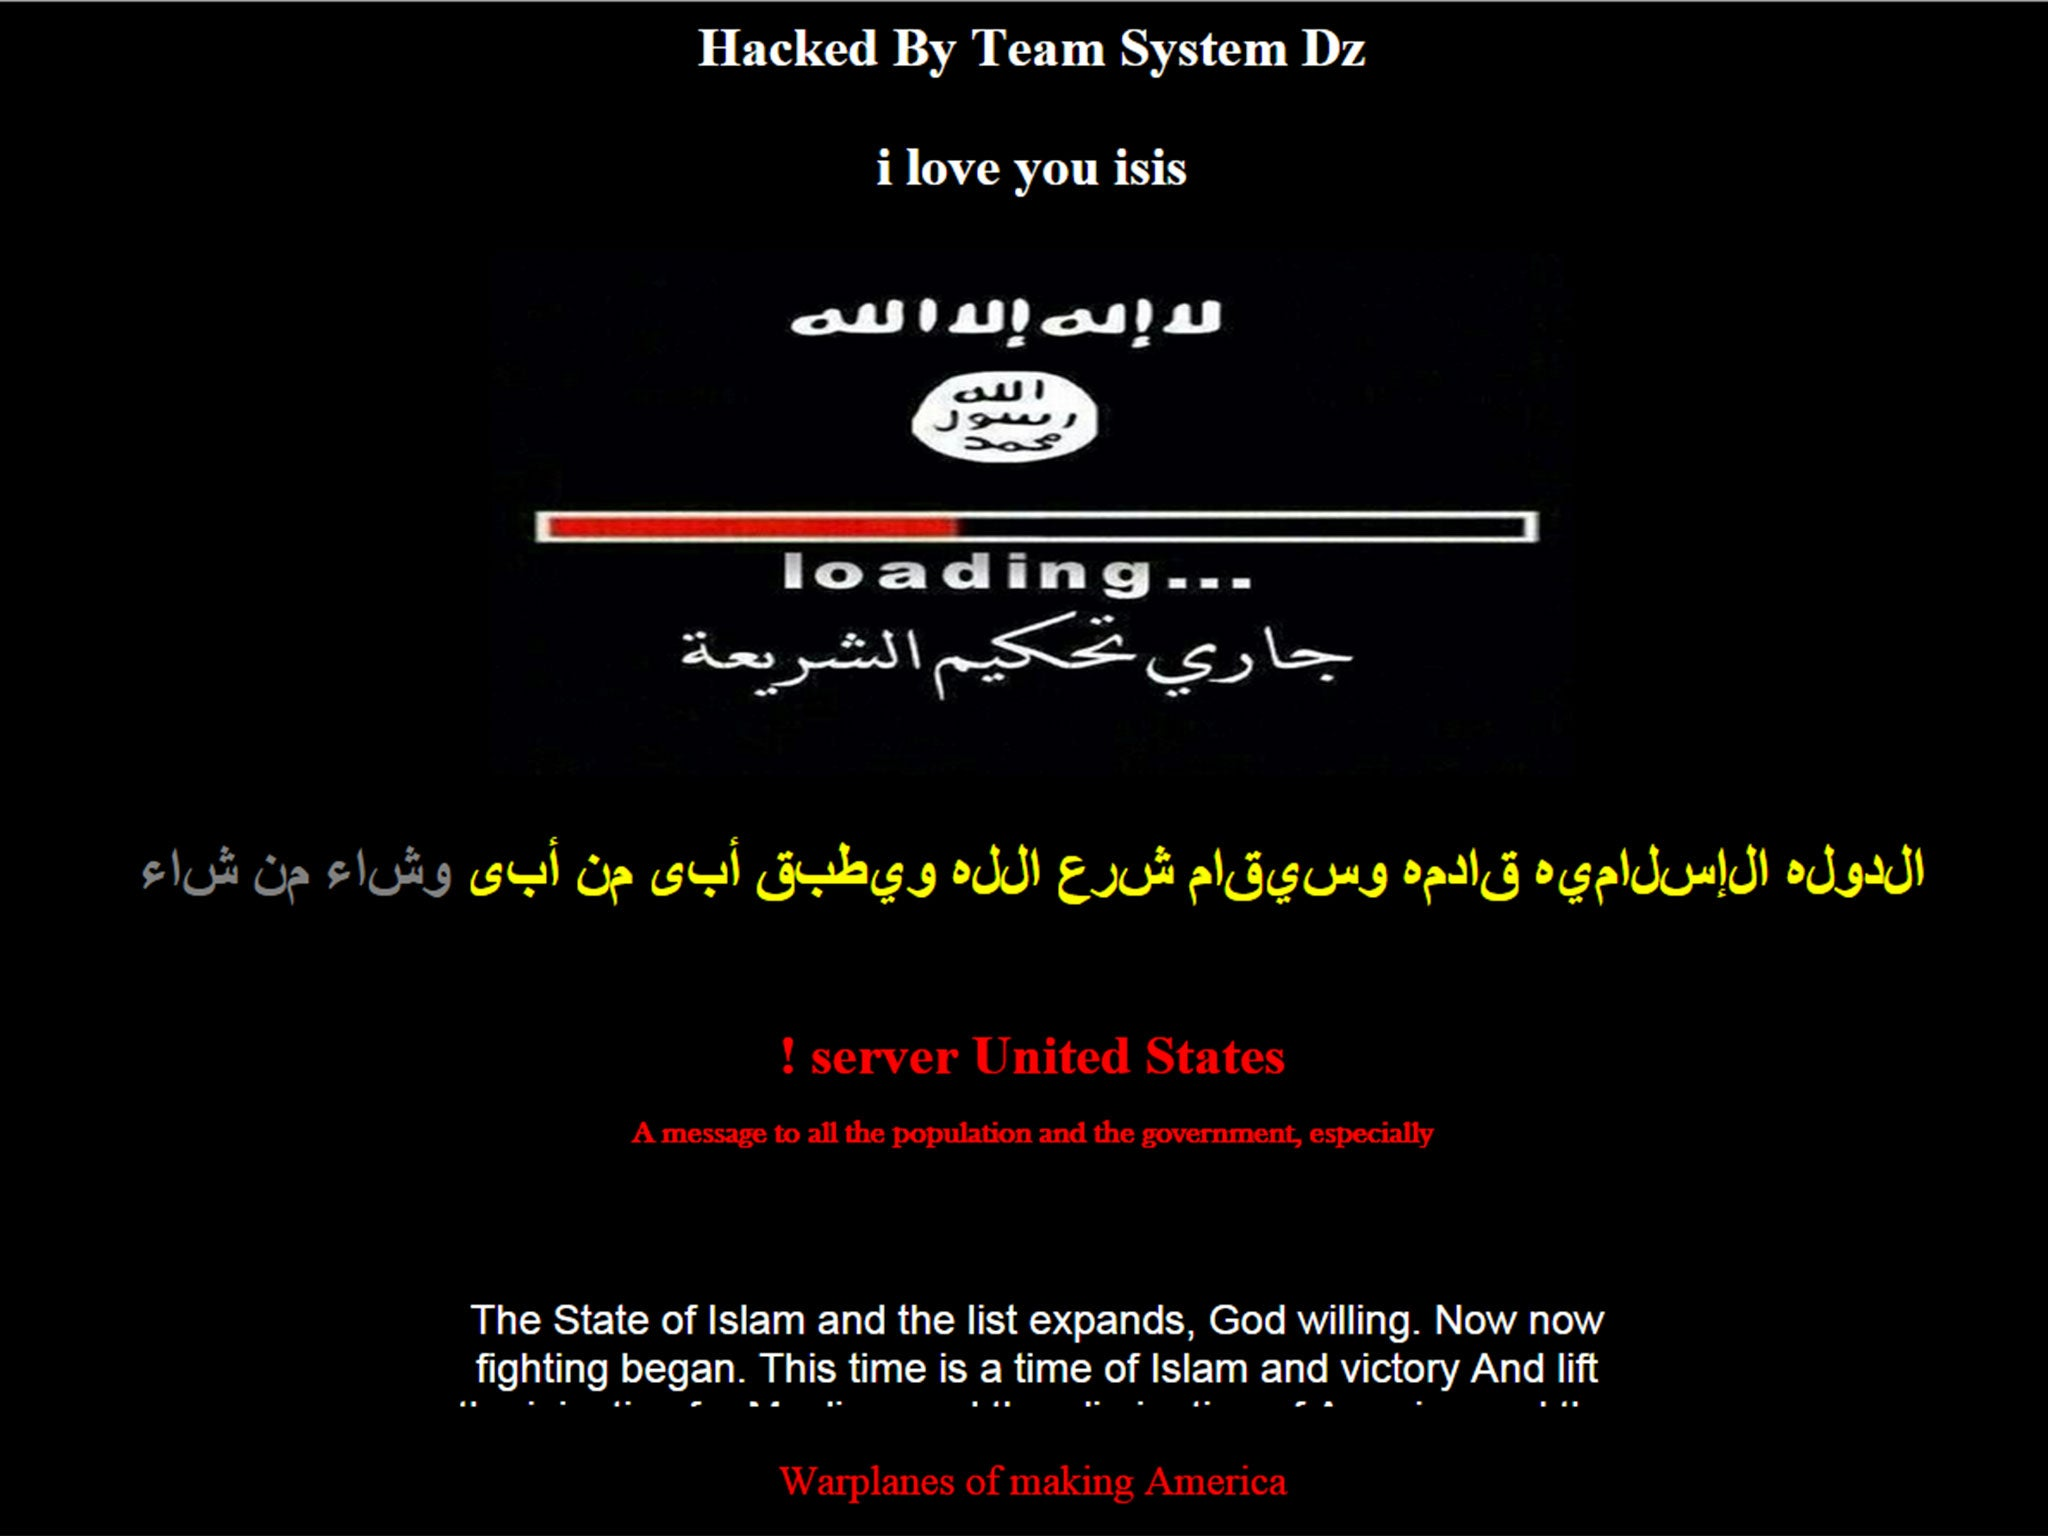 Hacked by team system Dz